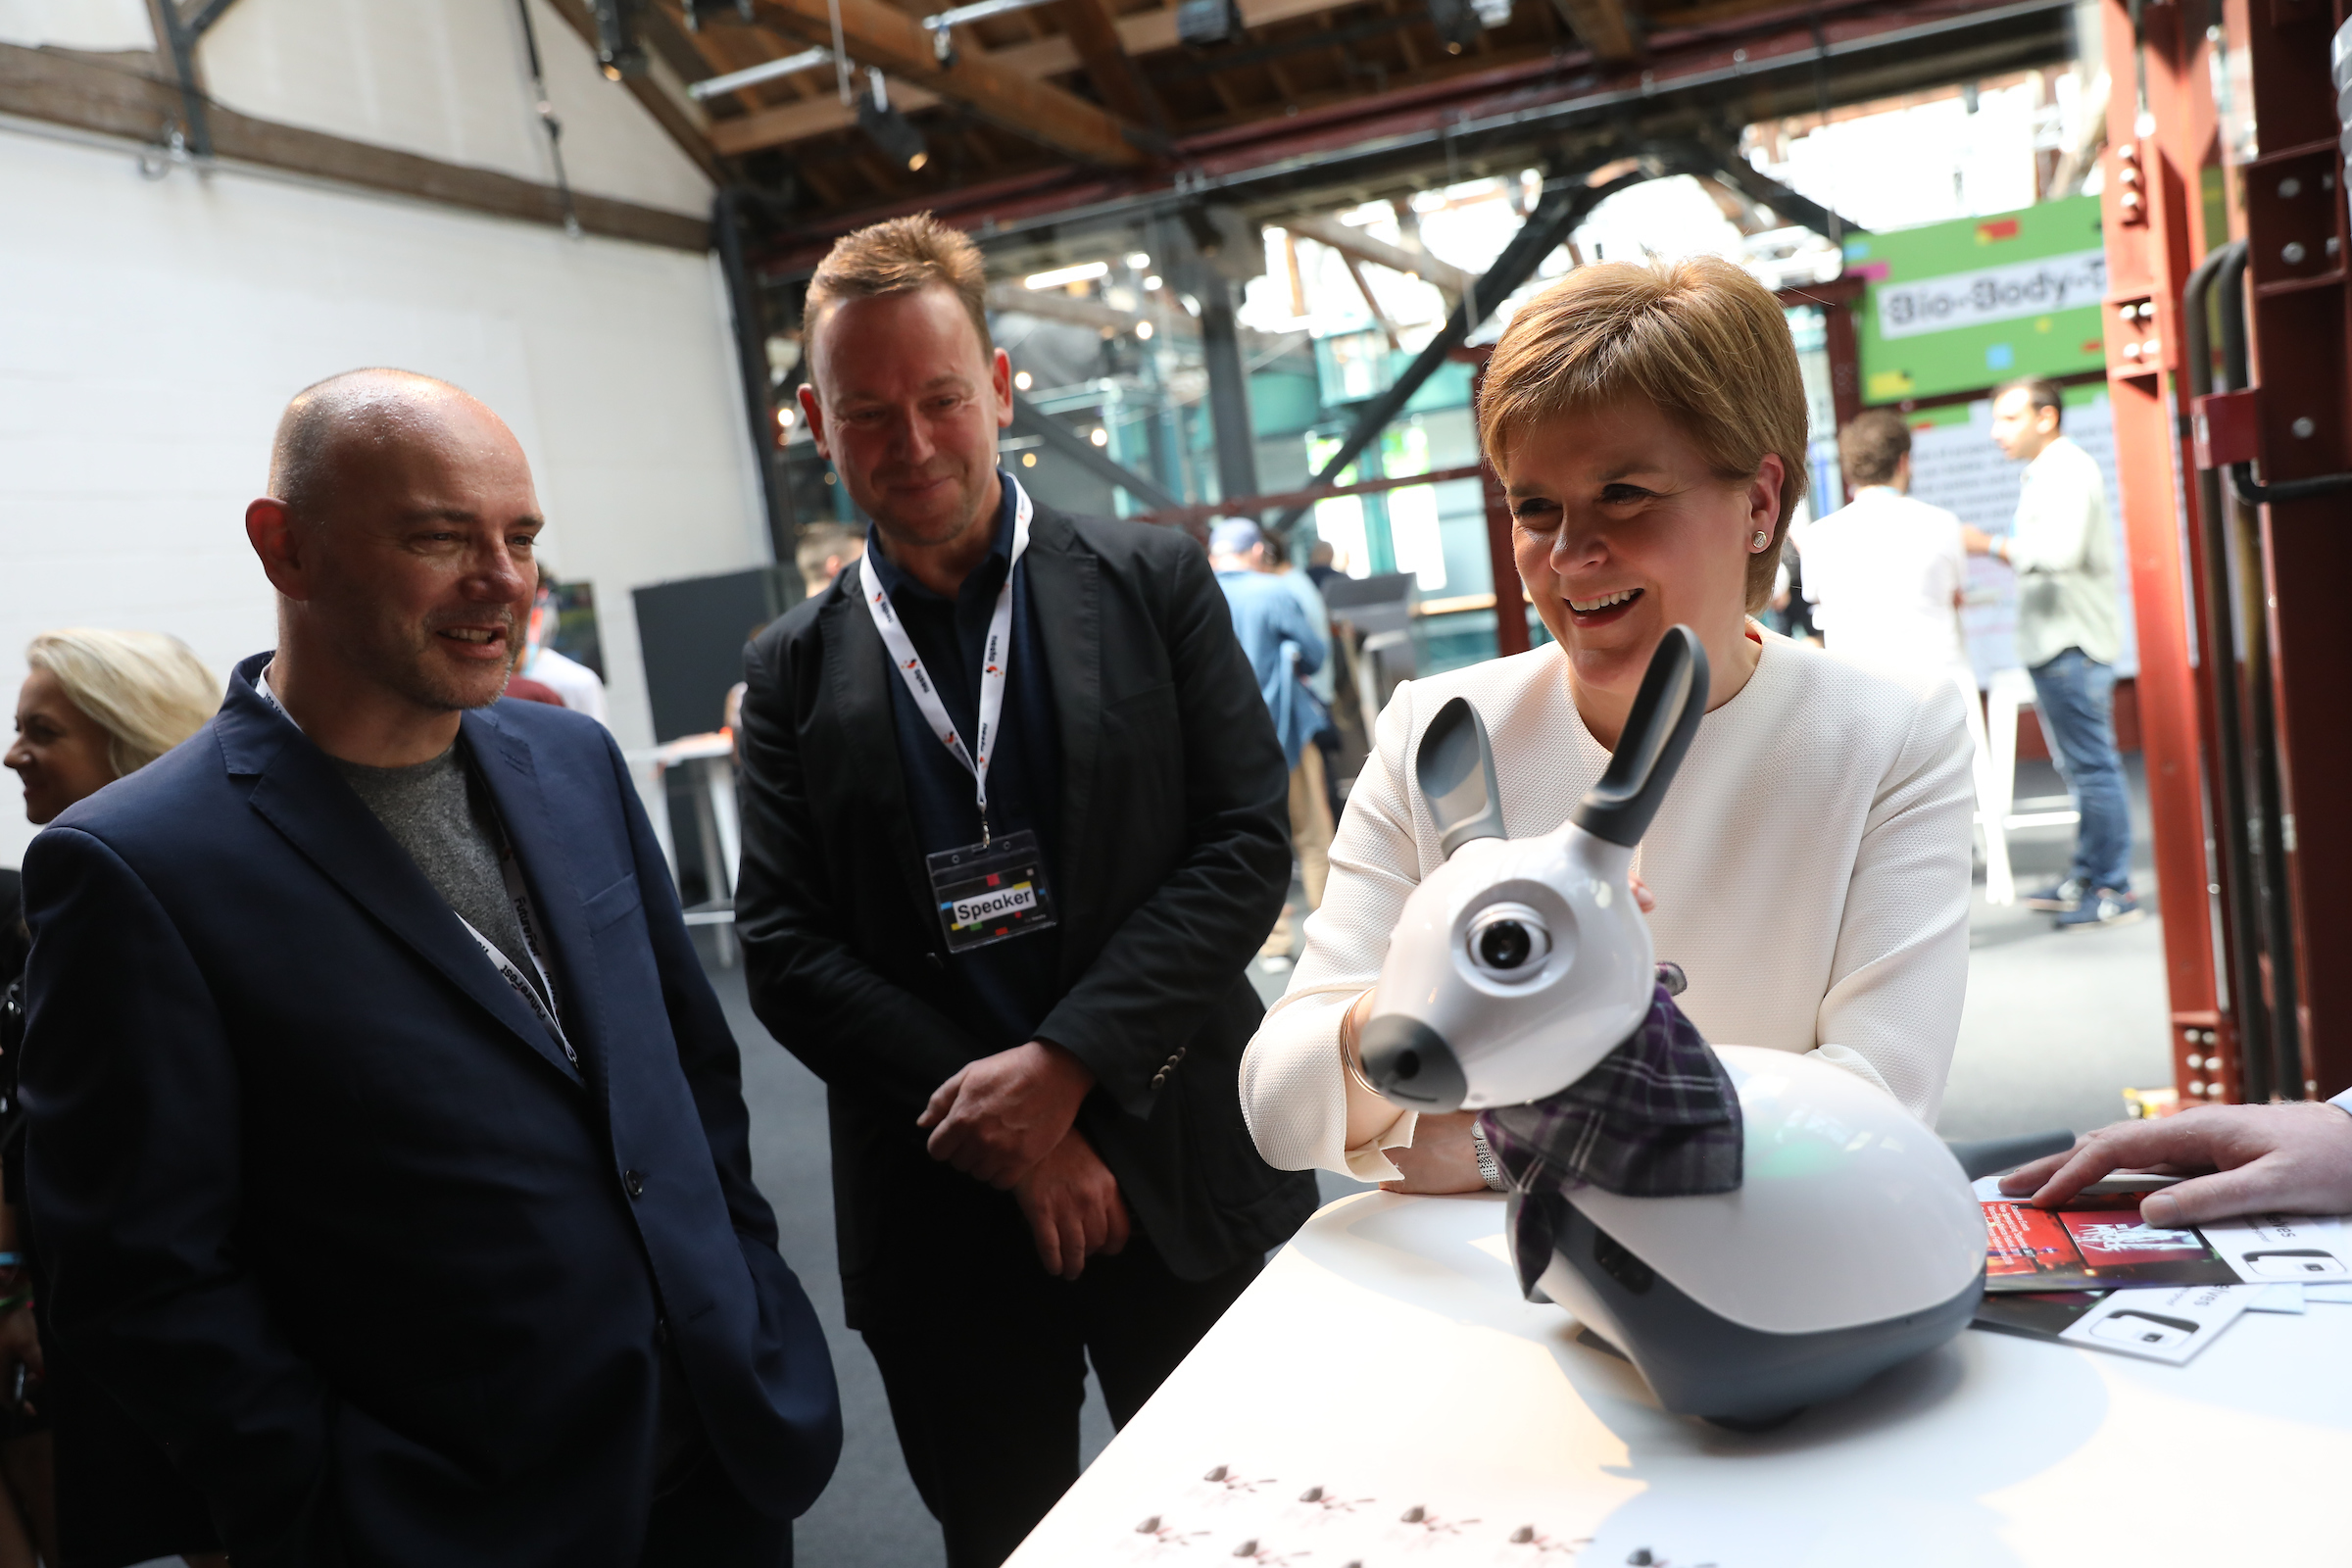 Pat Kane, left, and First Minister Nicola Sturgeon at FutureFest. Photograph: Chris Ratcliffe